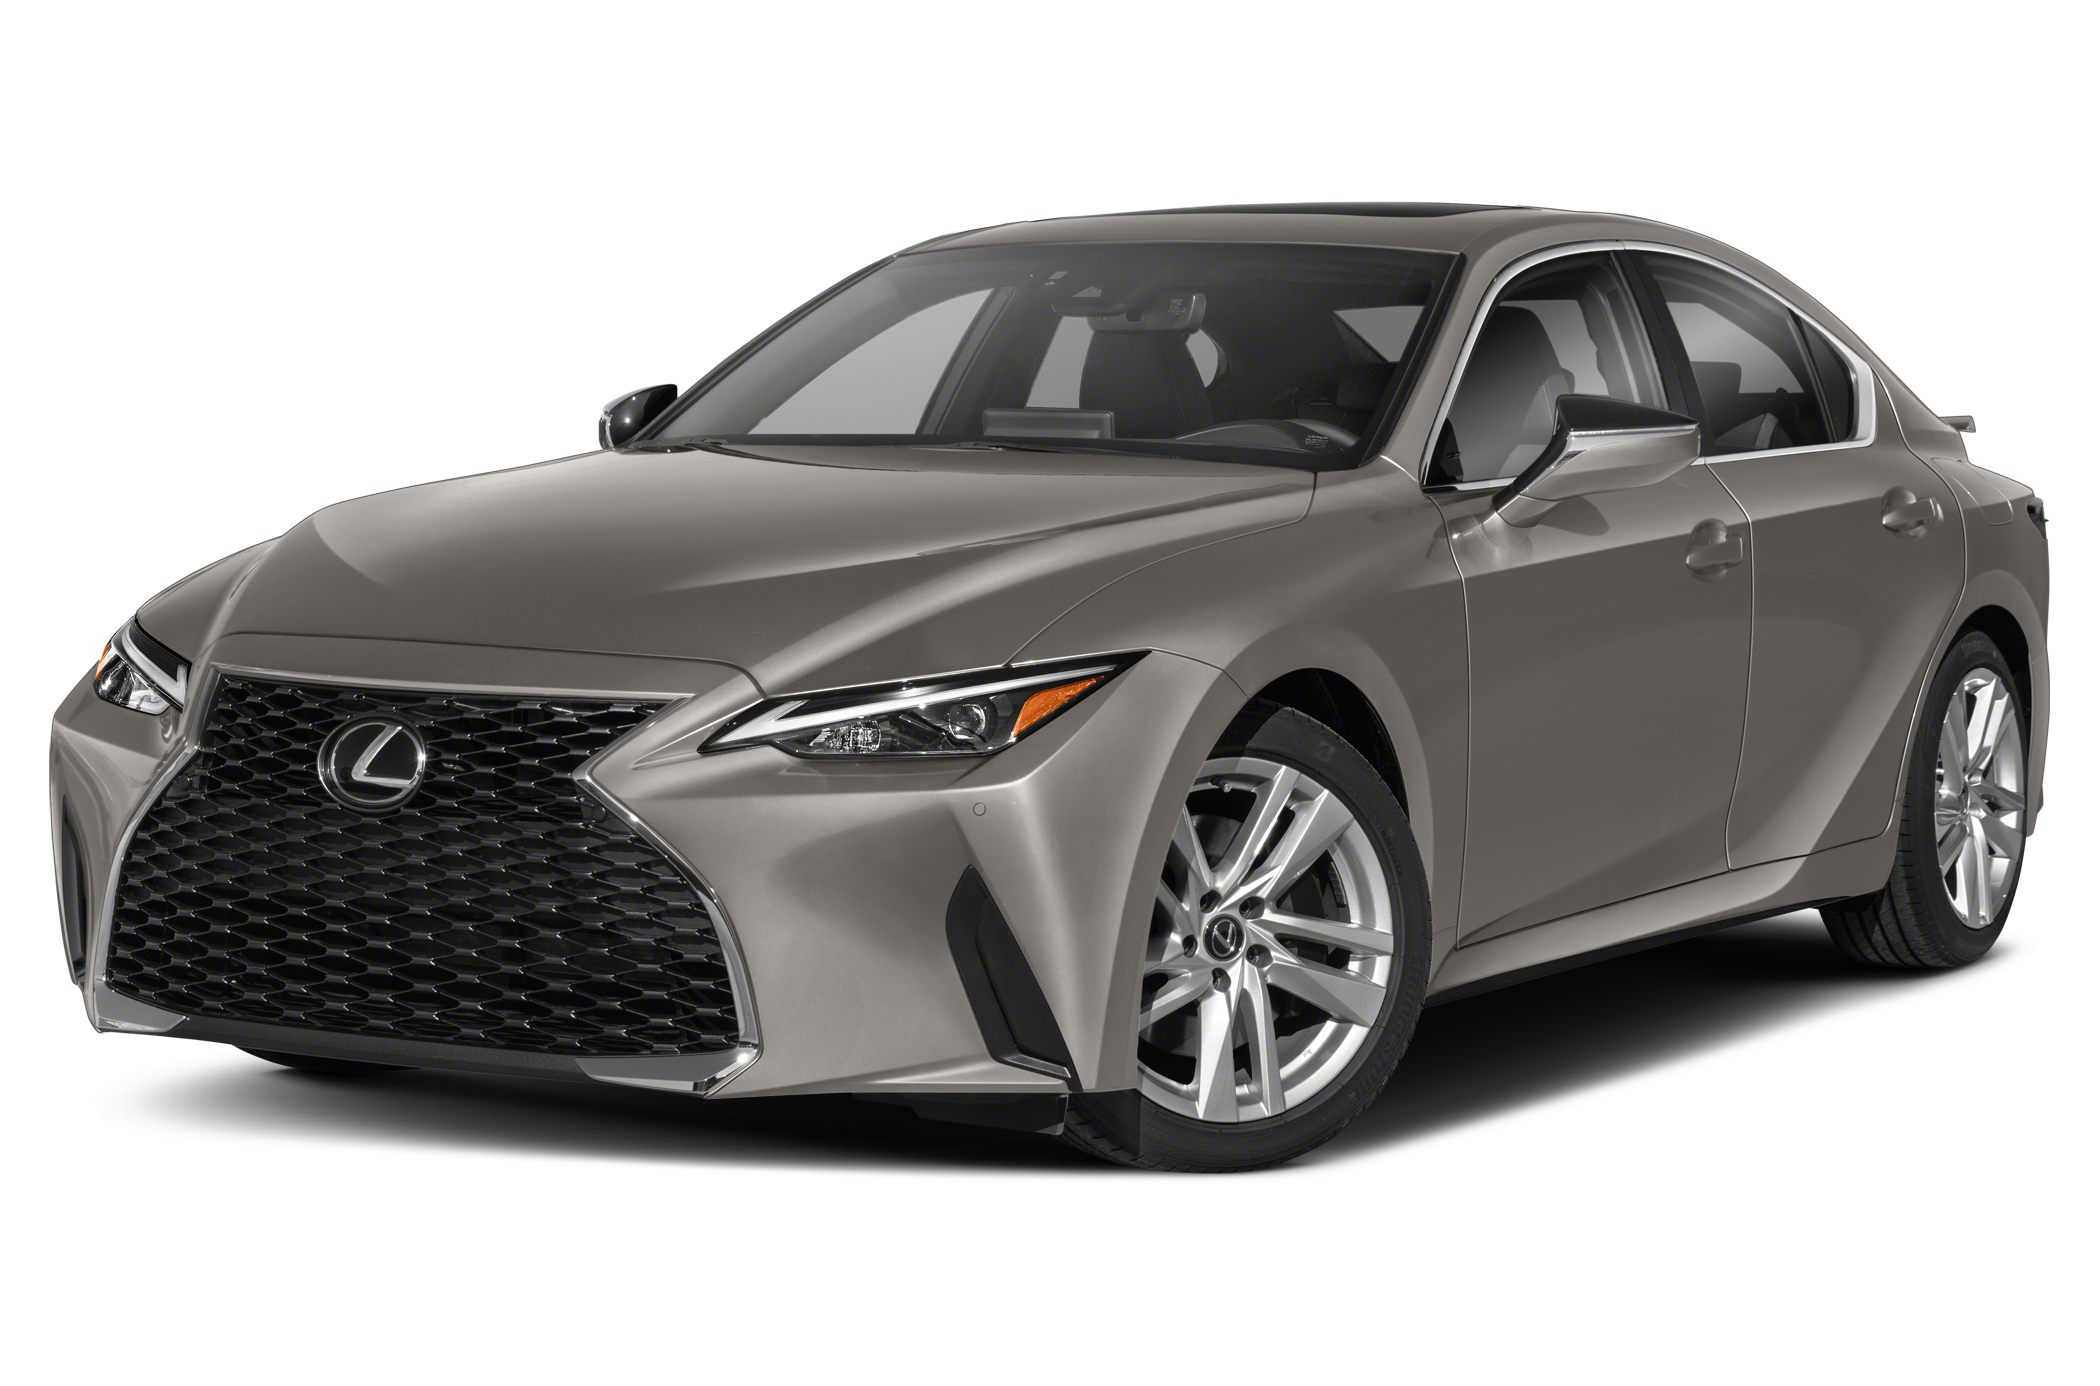 Lexus builds a one-off IS 350 with a record player in the glove box |  Autoblog